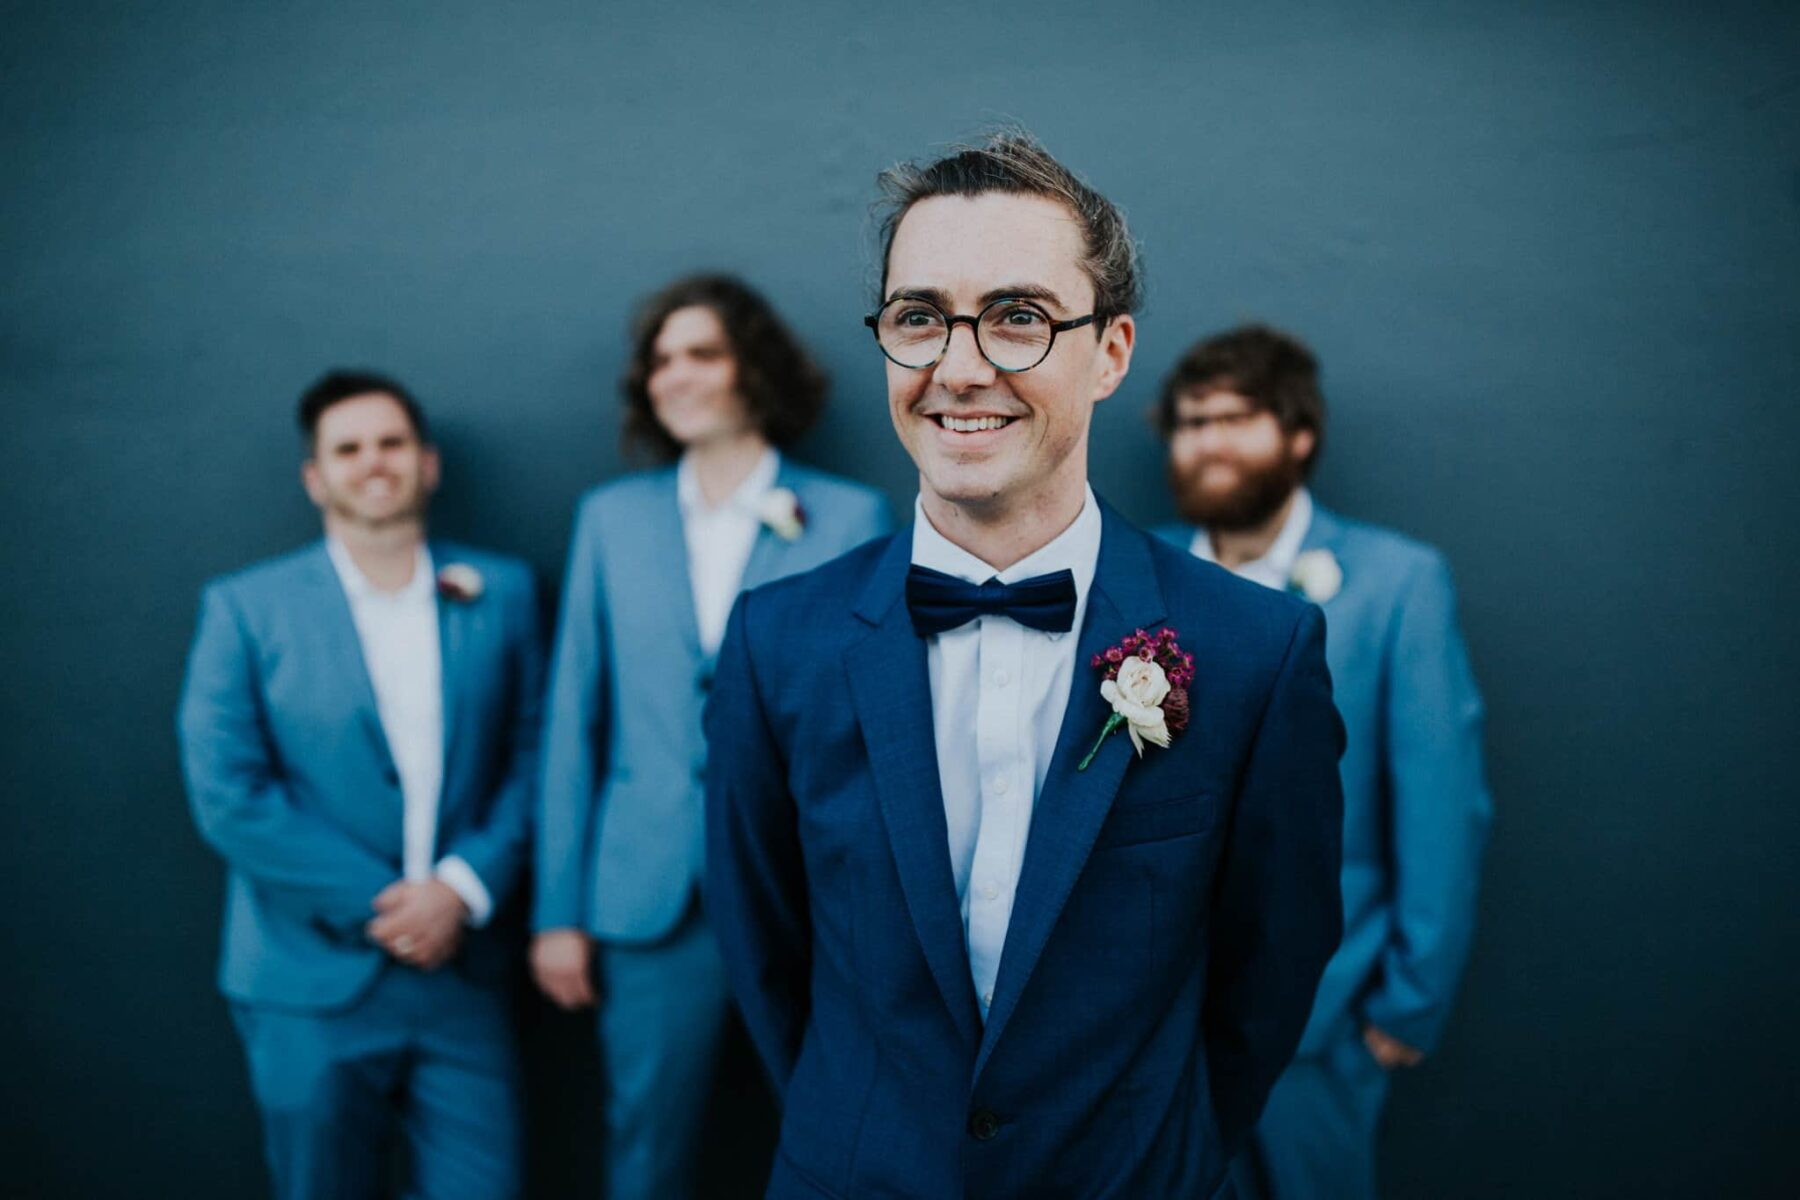 Groom and groomsmen in mixed blue suits